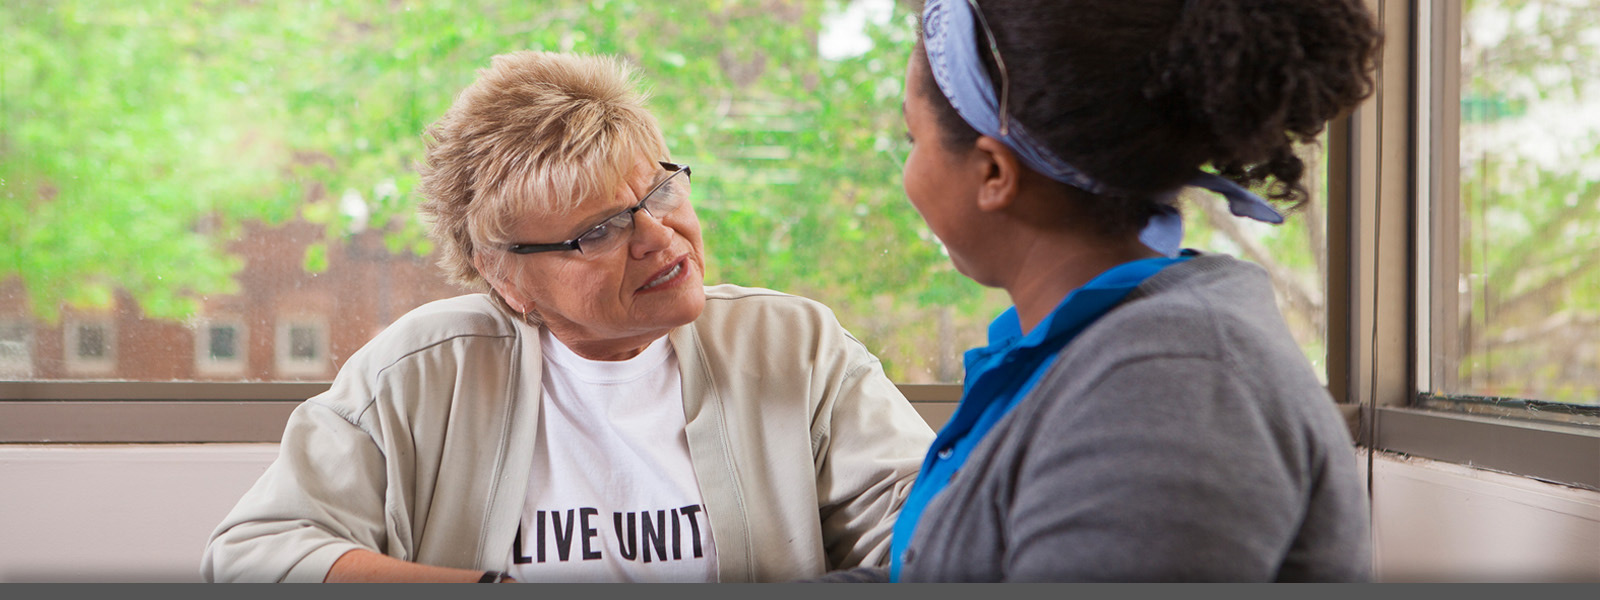 The Heart of Illinois United Way is focused on ensuring the people of central Illinois have access to quality, affordable health care. The health and well-being of our citizens is a strong indicator of the health of our community.